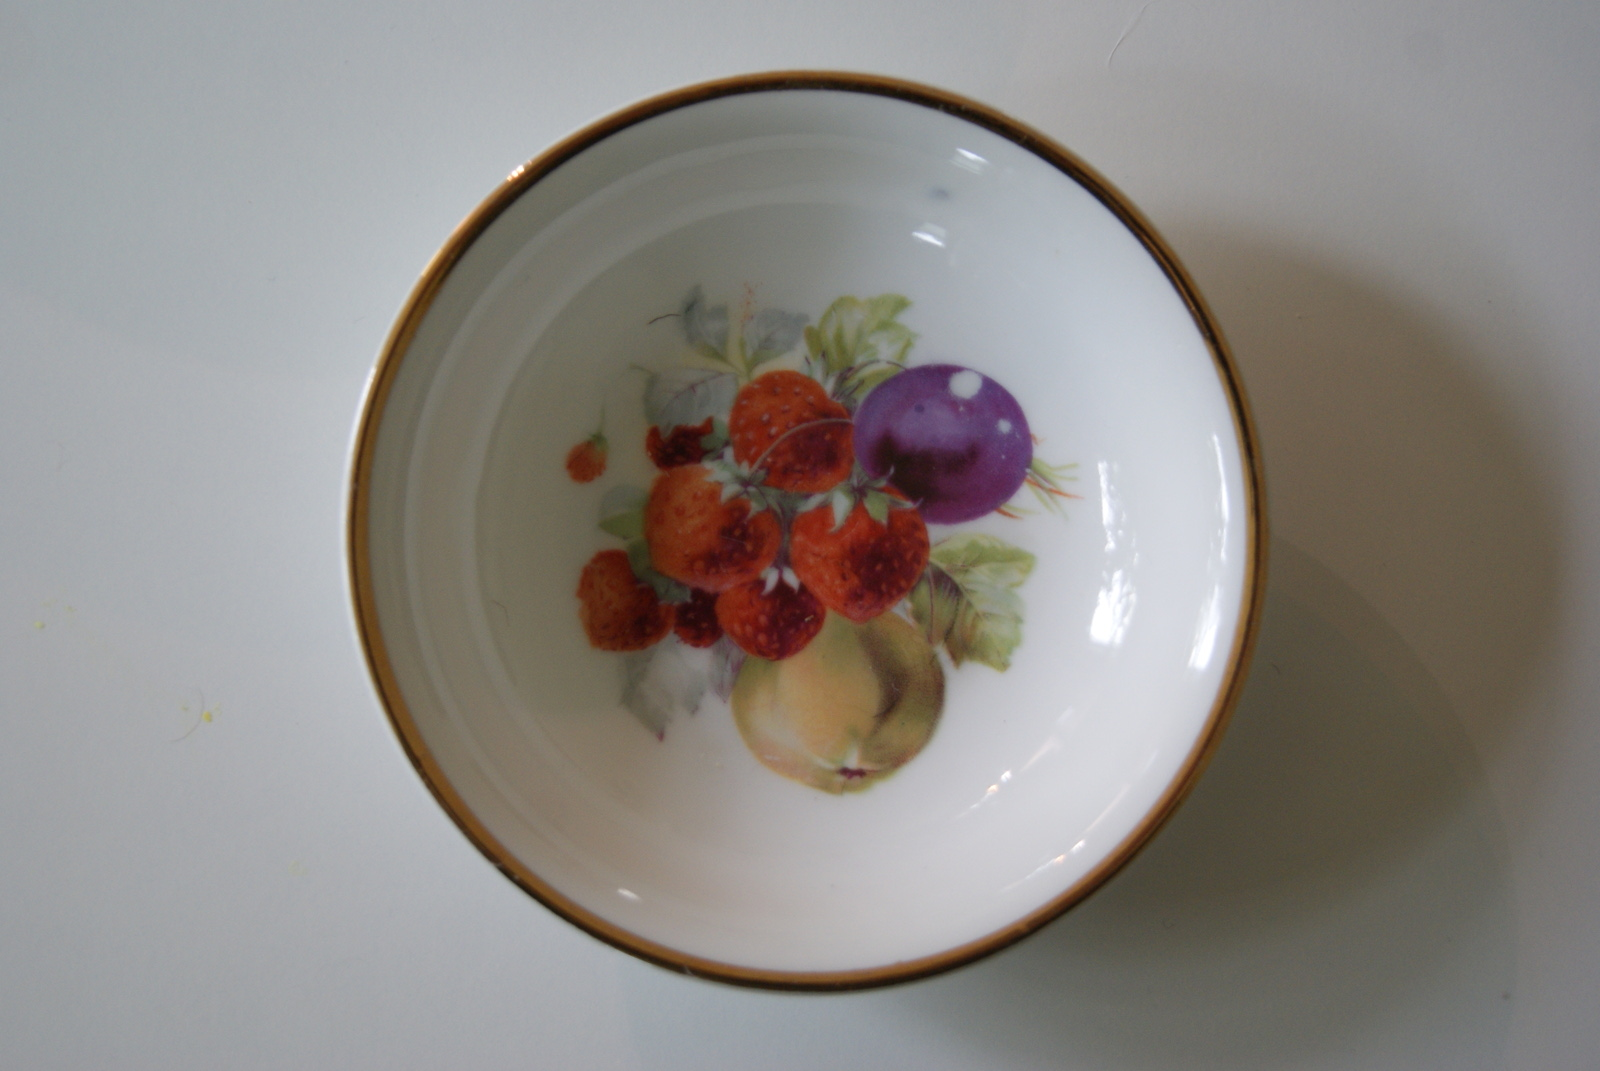 Porsgrund dessert bowl with fruits - plums, pears and strawberries